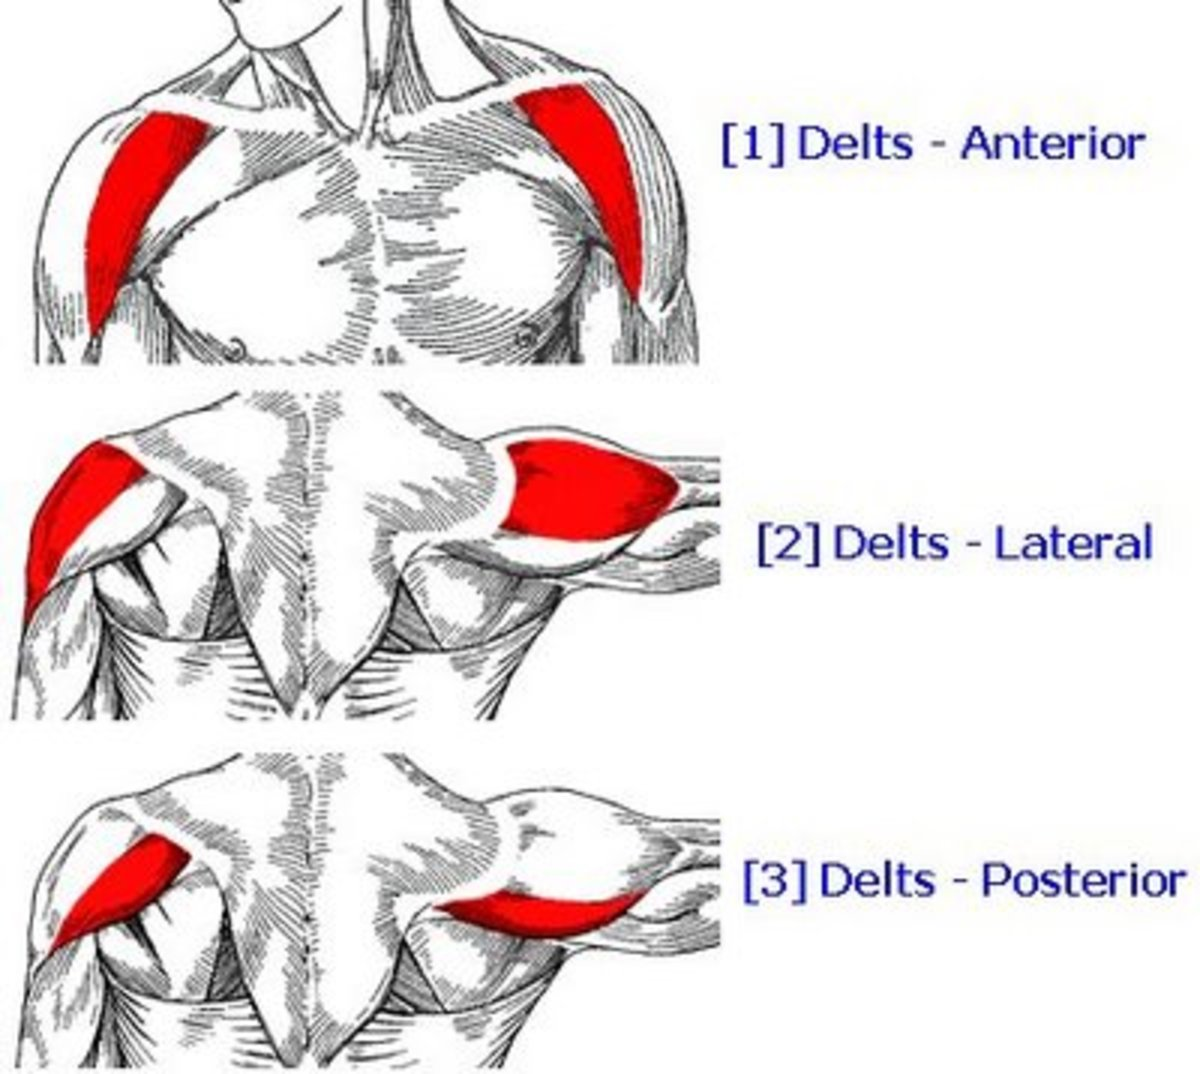 The deltoids, or shoulder muscles: one of the muscle groups you'll be (over)working during P90X: Shoulders and Arms.